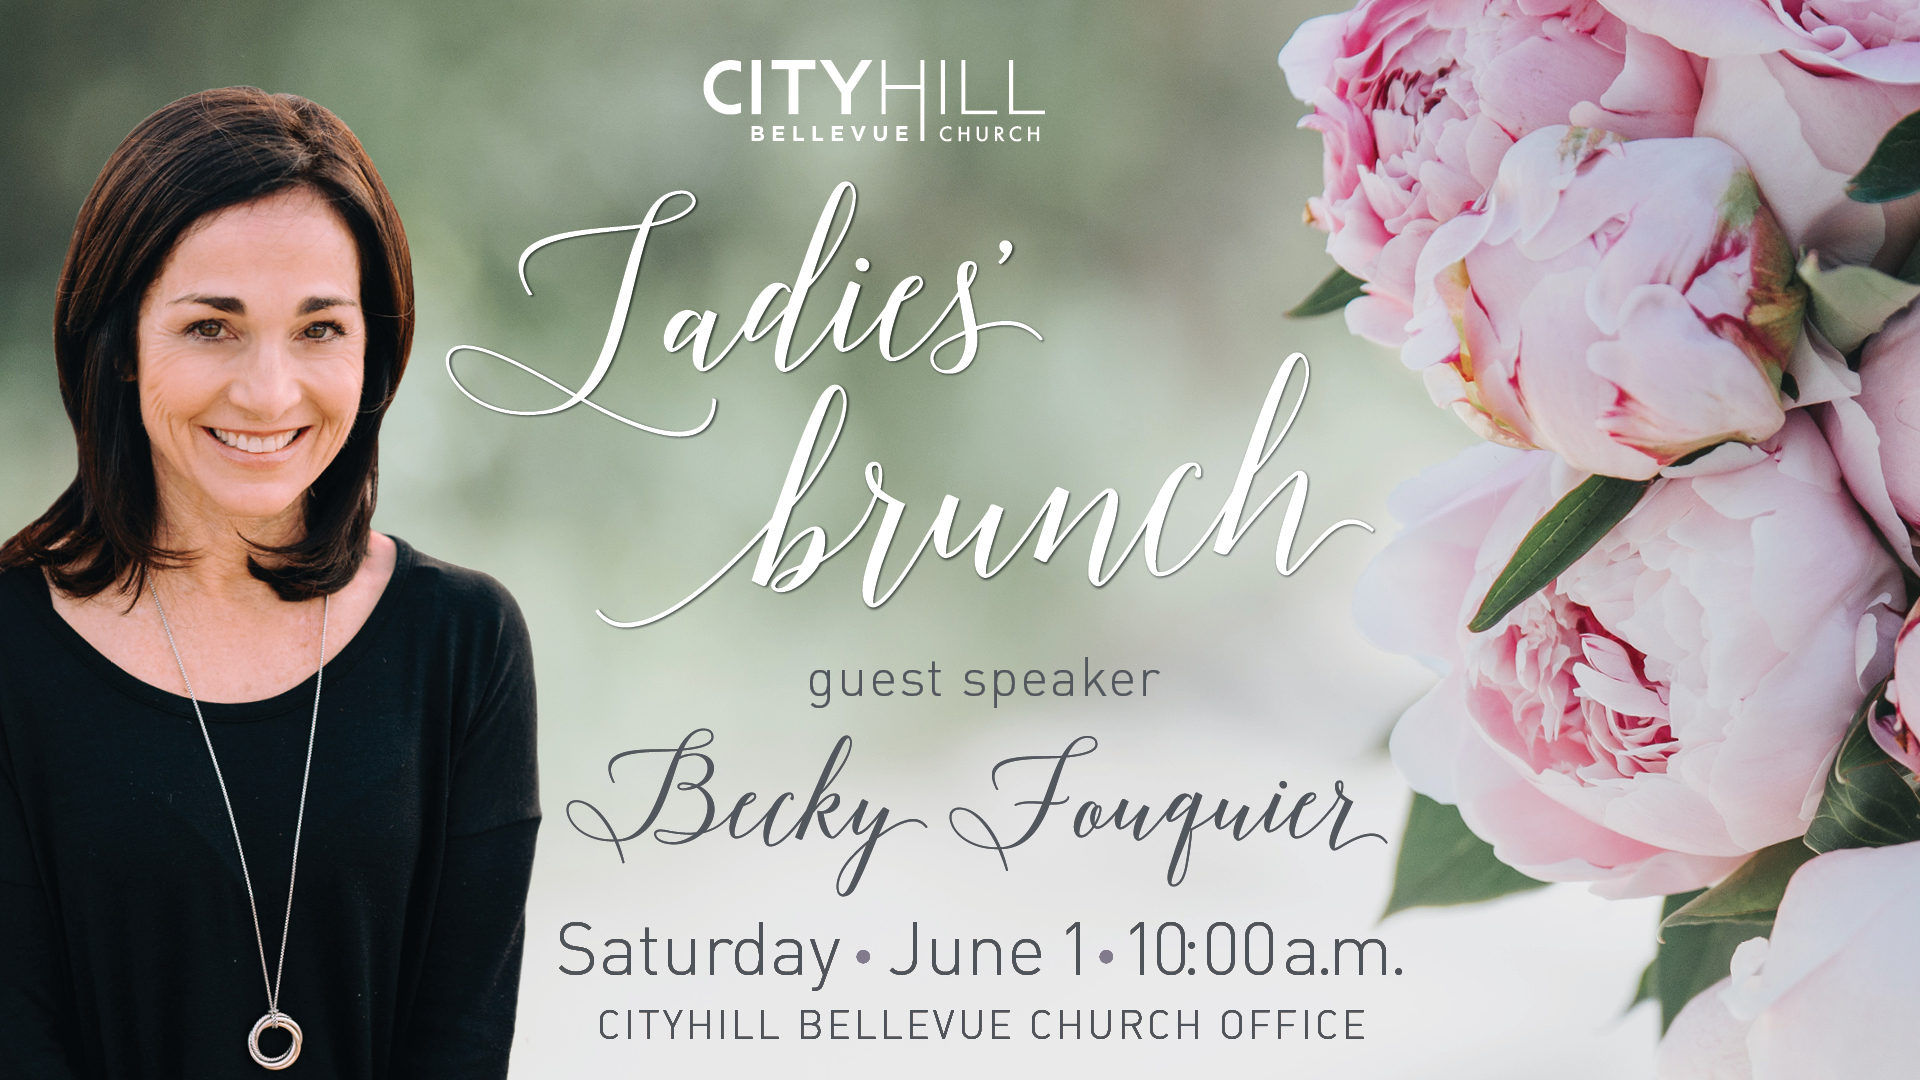 CH_Bellevue_ladies_brunch_06.01.19.jpg